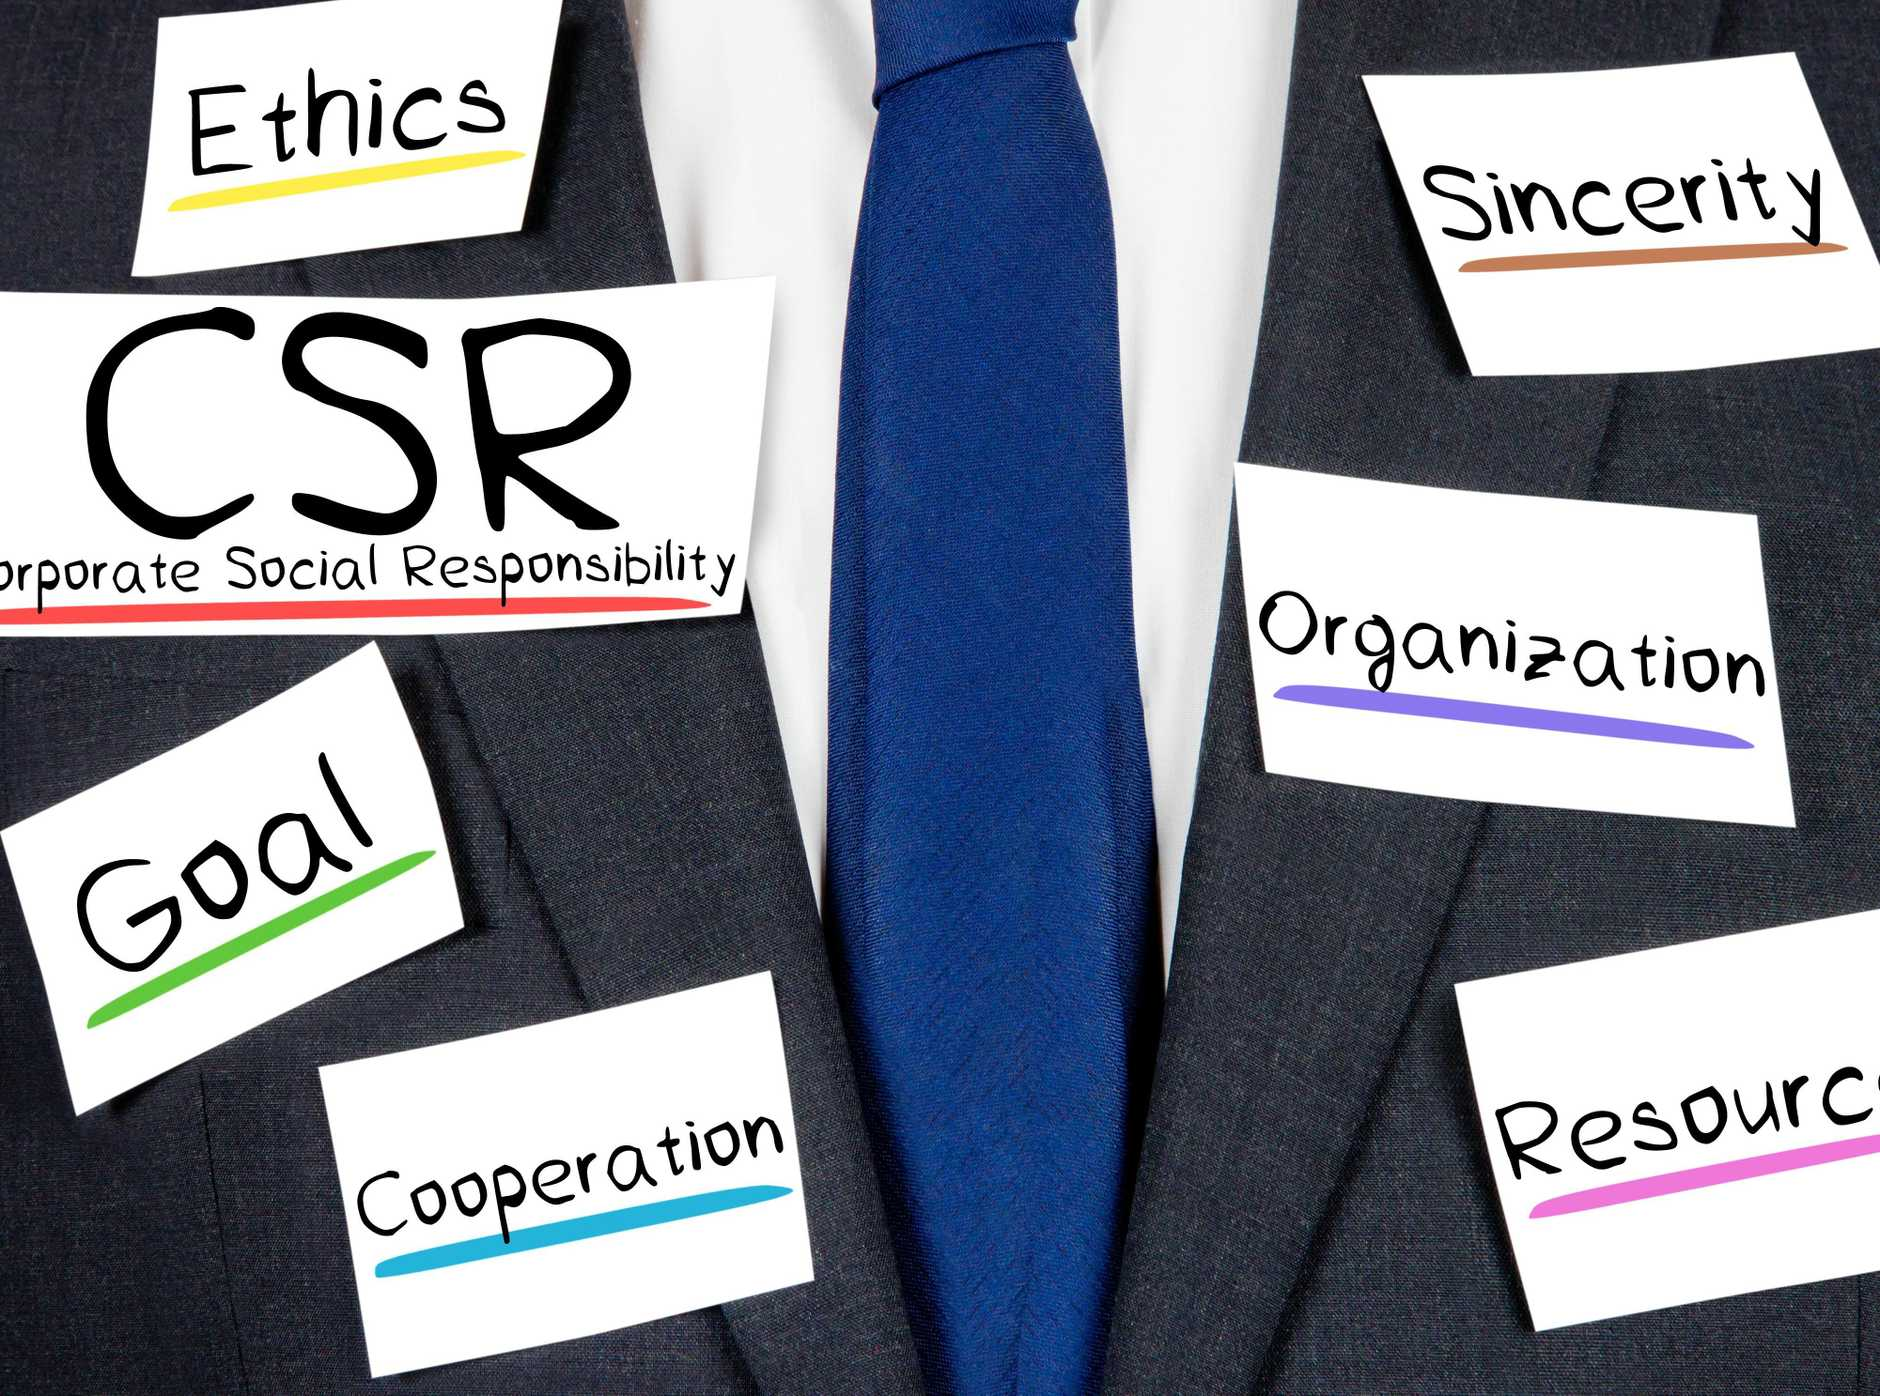 In self-regulation, there is sometimes more an emphasis on the 'self' than the 'regulation'.